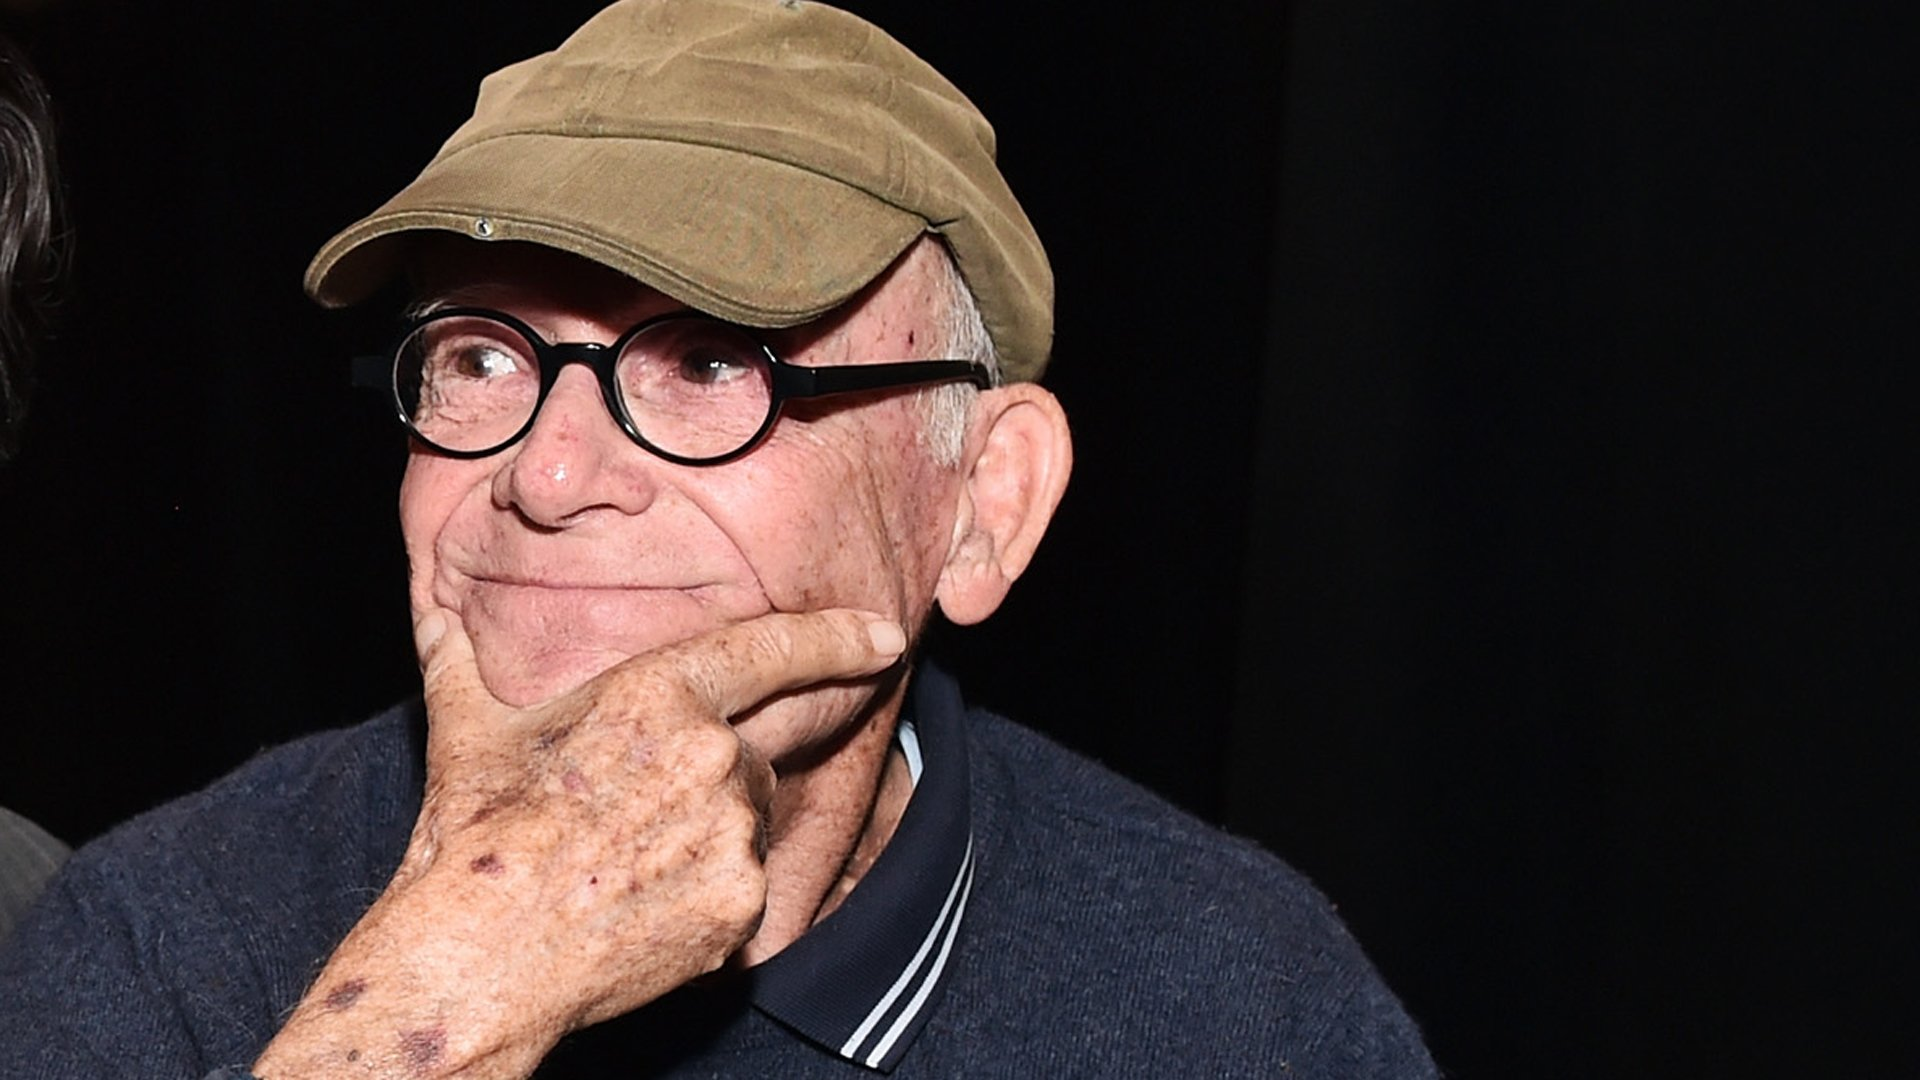 Buck Henry attends the screening of 'The Graduate' during the 2017 TCM Classic Film Festival on April 8, 2017, in Los Angeles. (Credit: Emma McIntyre/Getty Images for TCM)